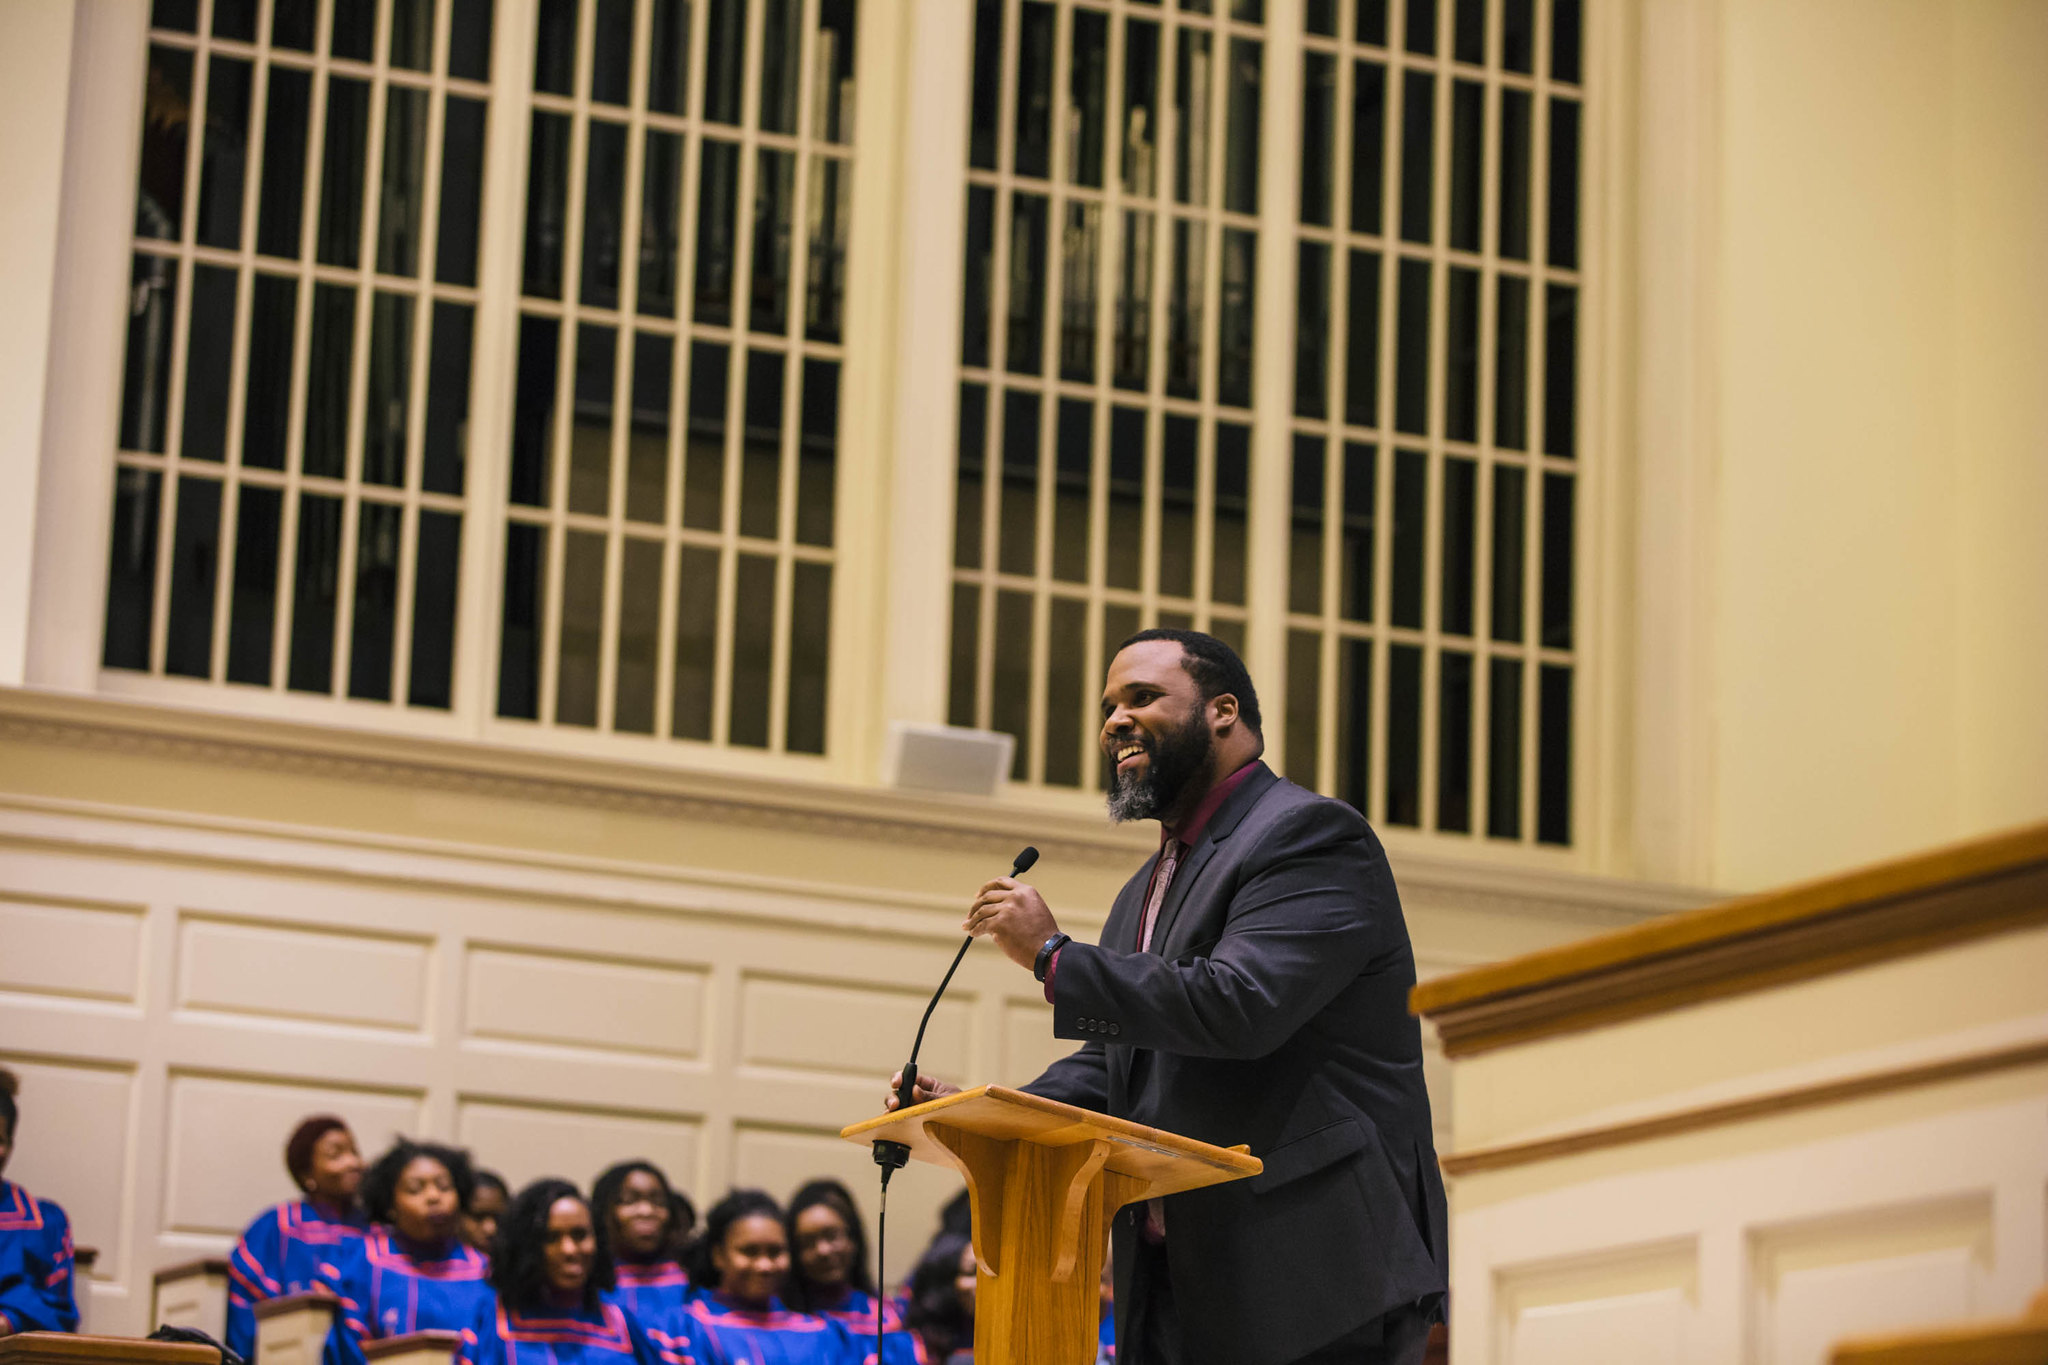 Davenport speaks at the college's Martin Luther King Day celebration in January 2017 (Photo courtesy of Gettysburg College)